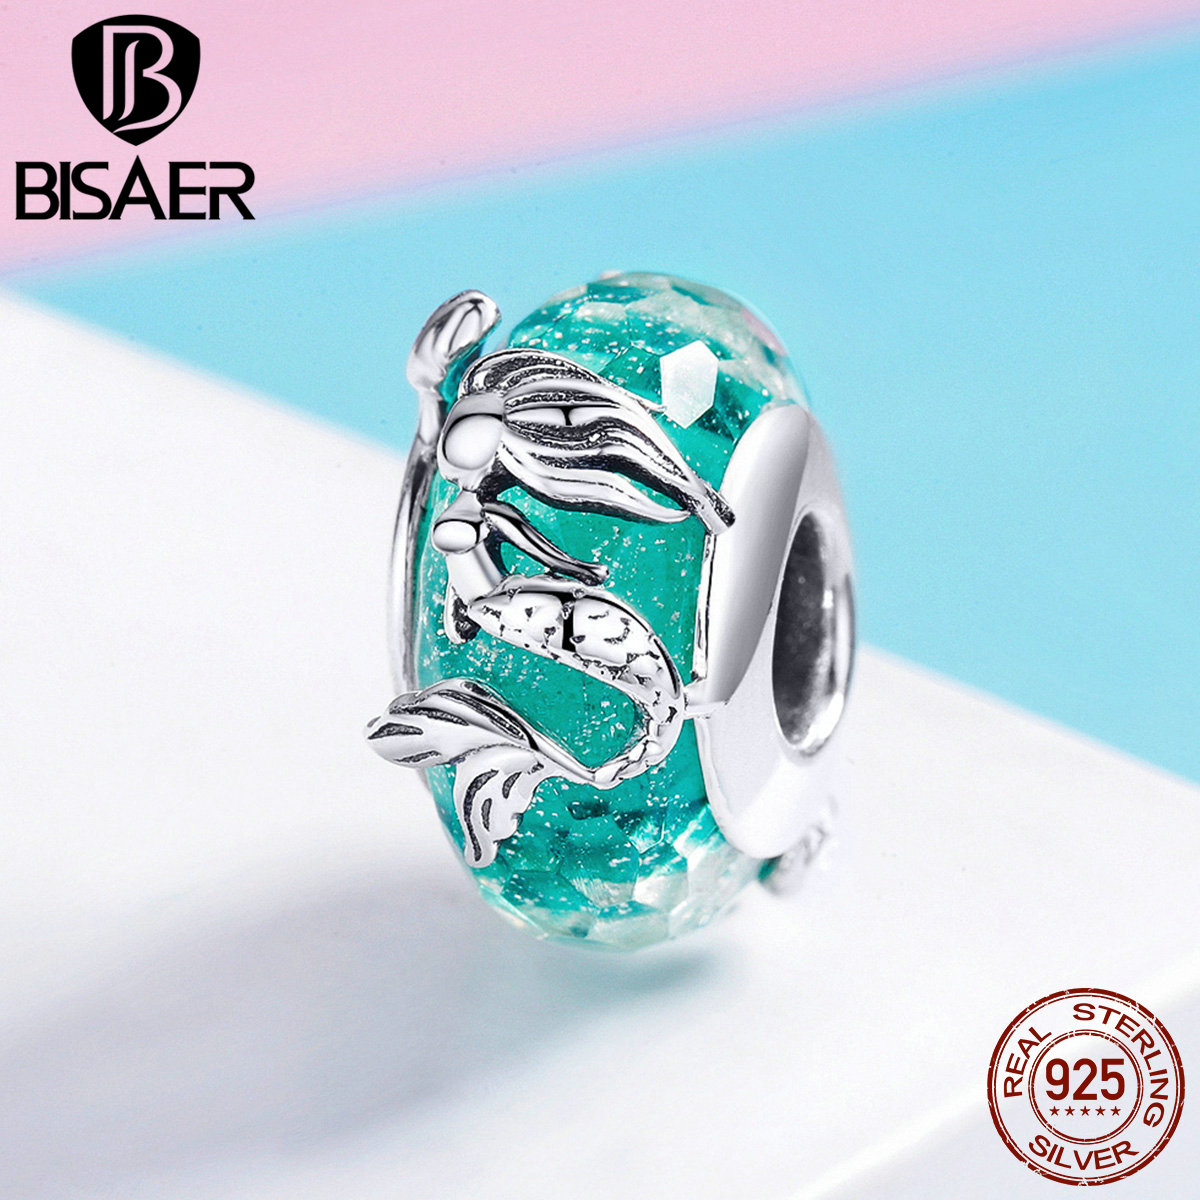 BISAER Sale 925 Sterling Silver Mermaid's Story Glass Beads Green European Charms fit Charm Bracelet Silver 925 Jewelry ECC1154(China)